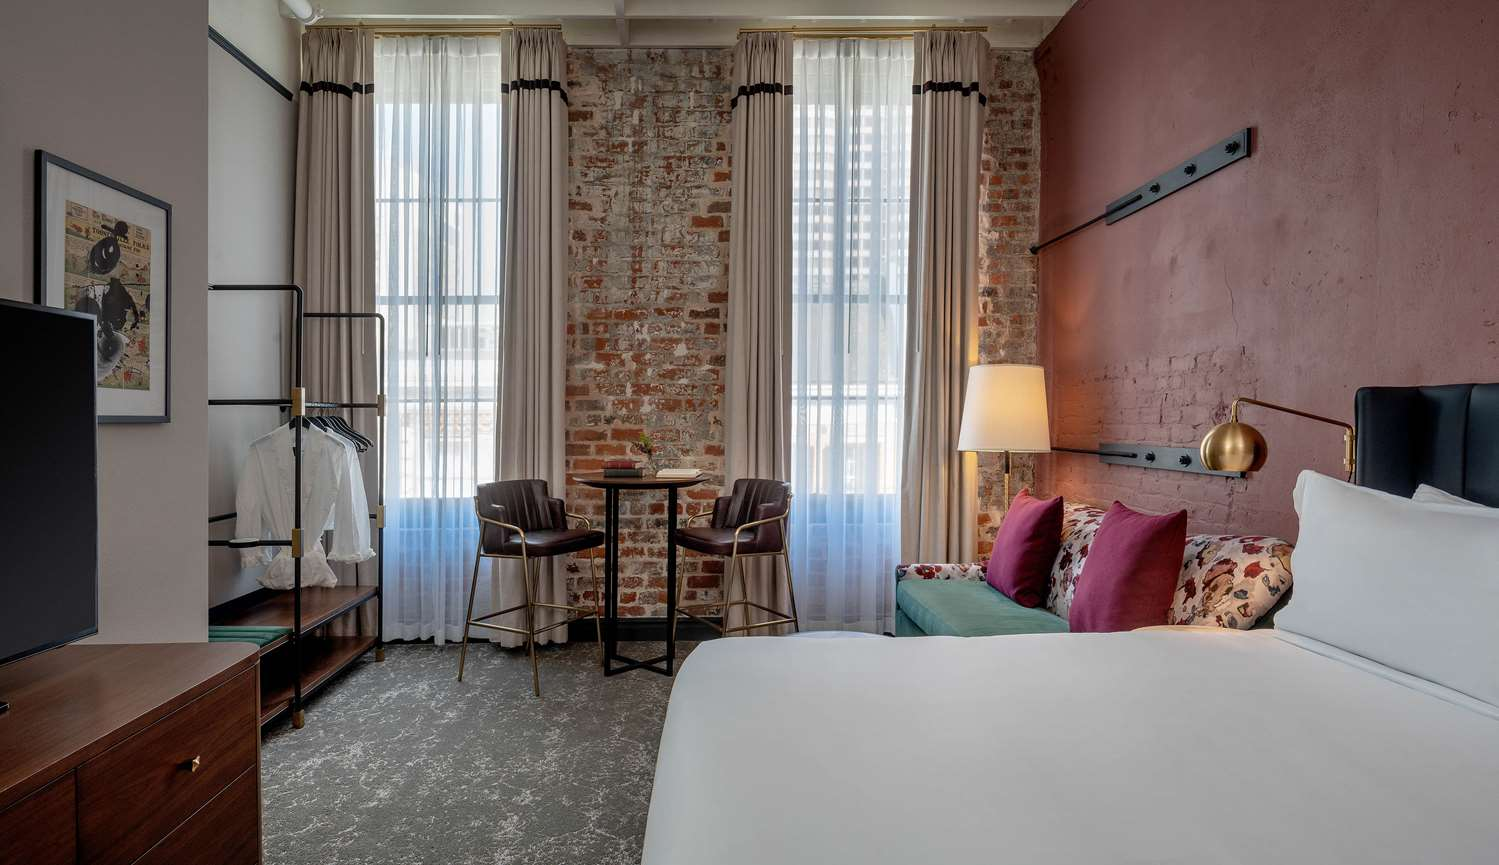 Room - Eliza Jane Hotel New Orleans